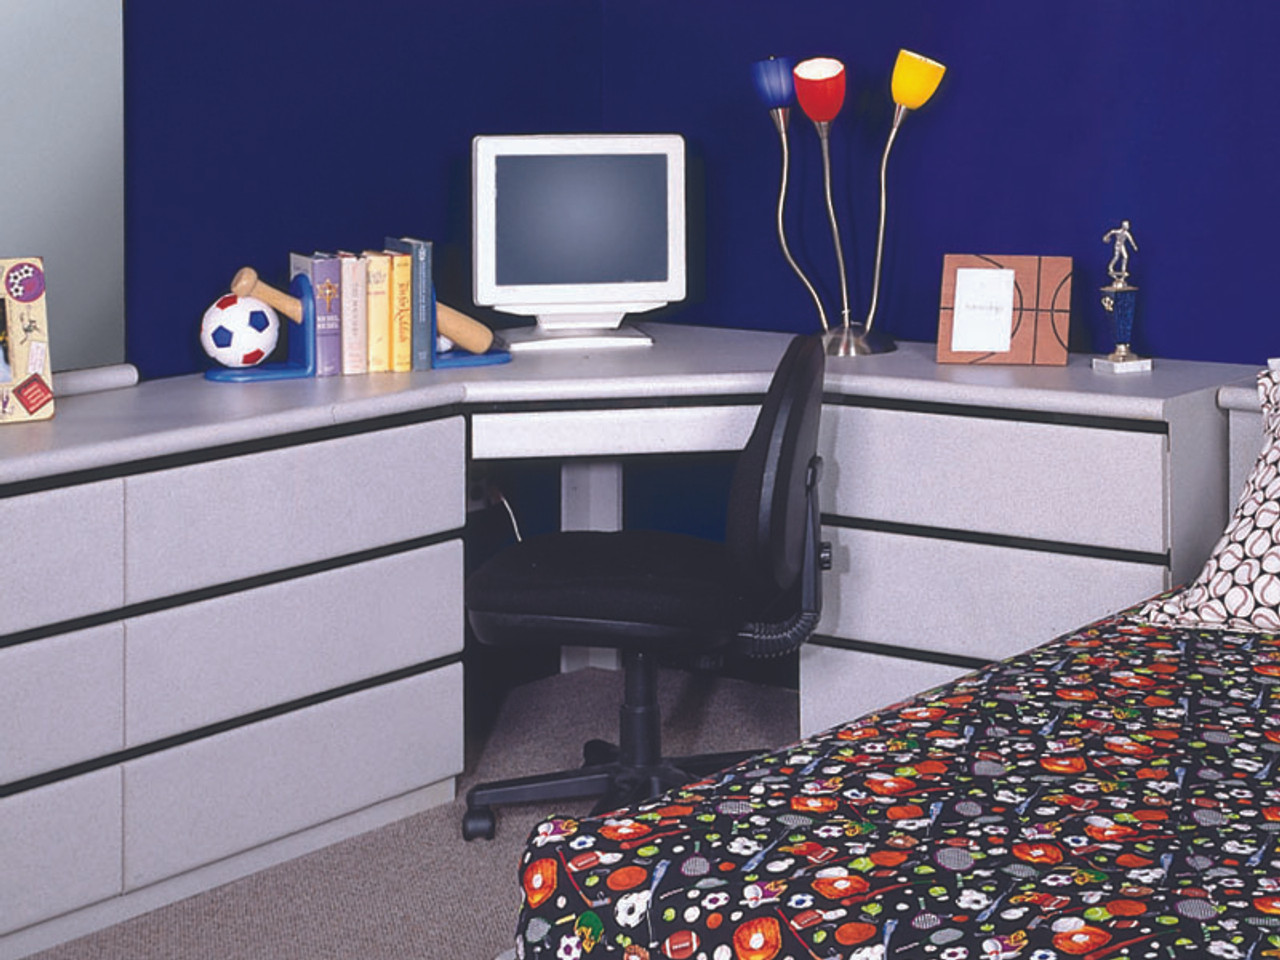 Mica Corner Desk - Bedroom Source - Long Island, NY